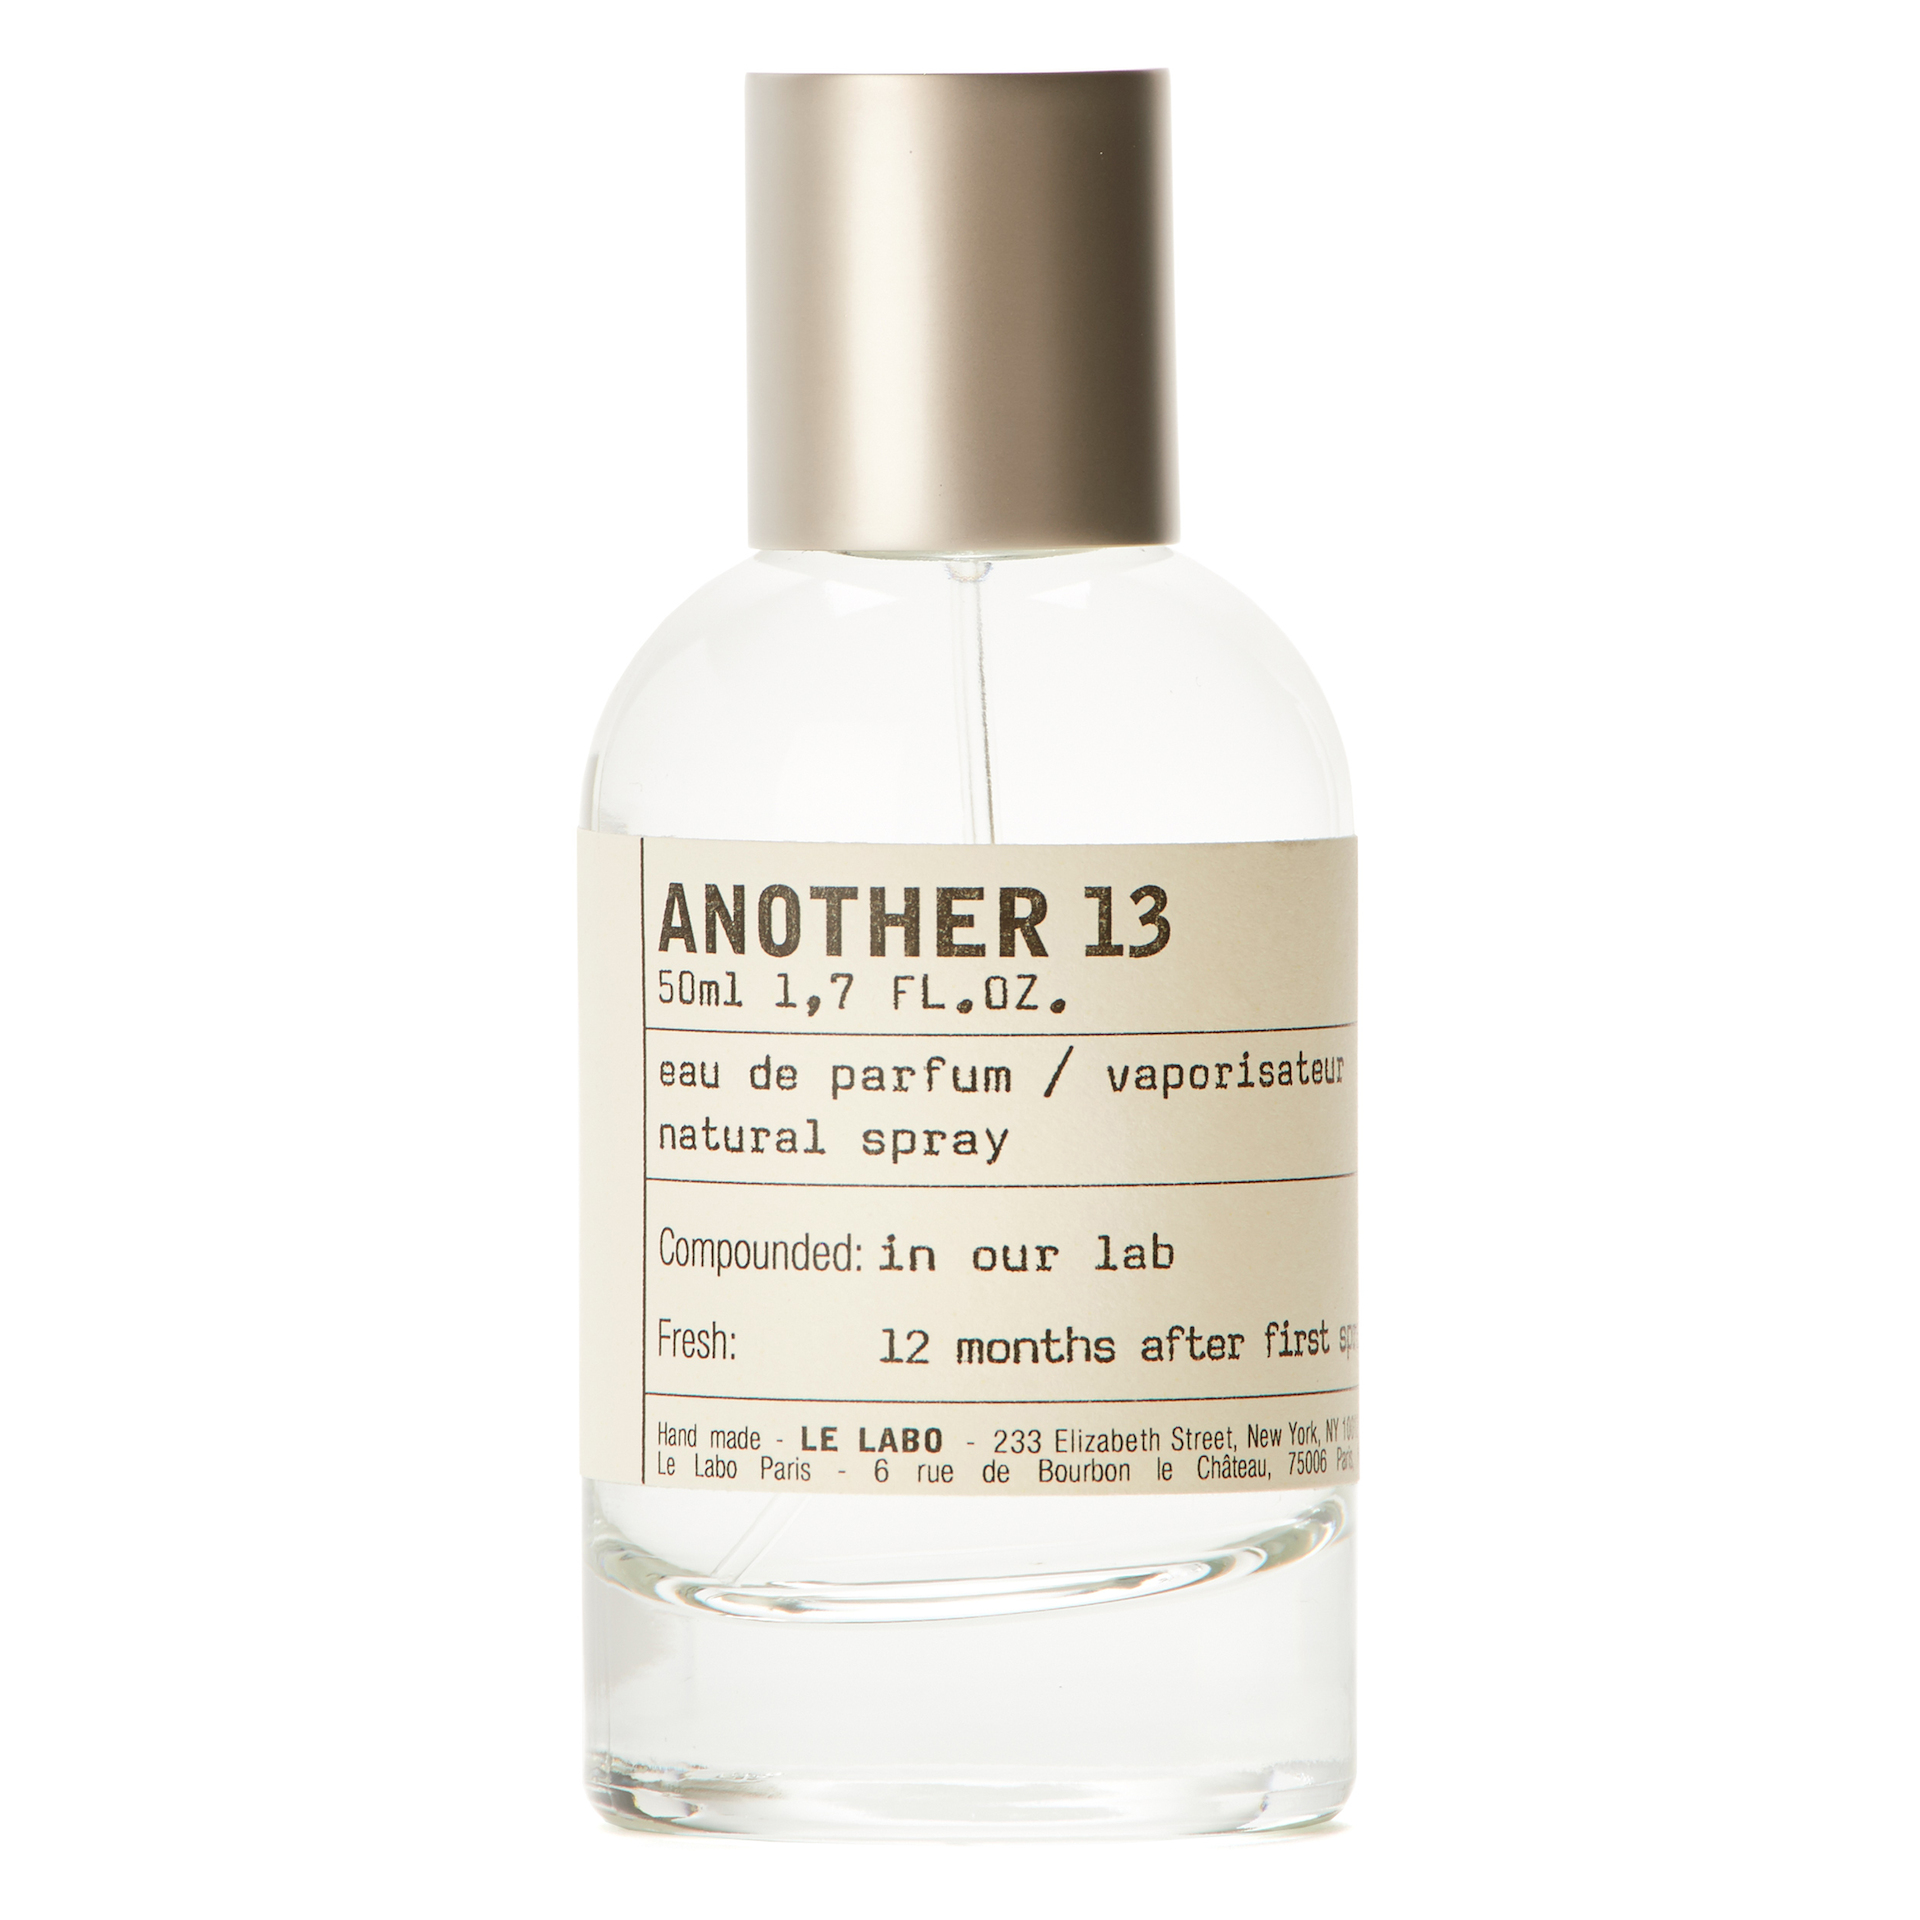 Another 13 Edp 50 ml